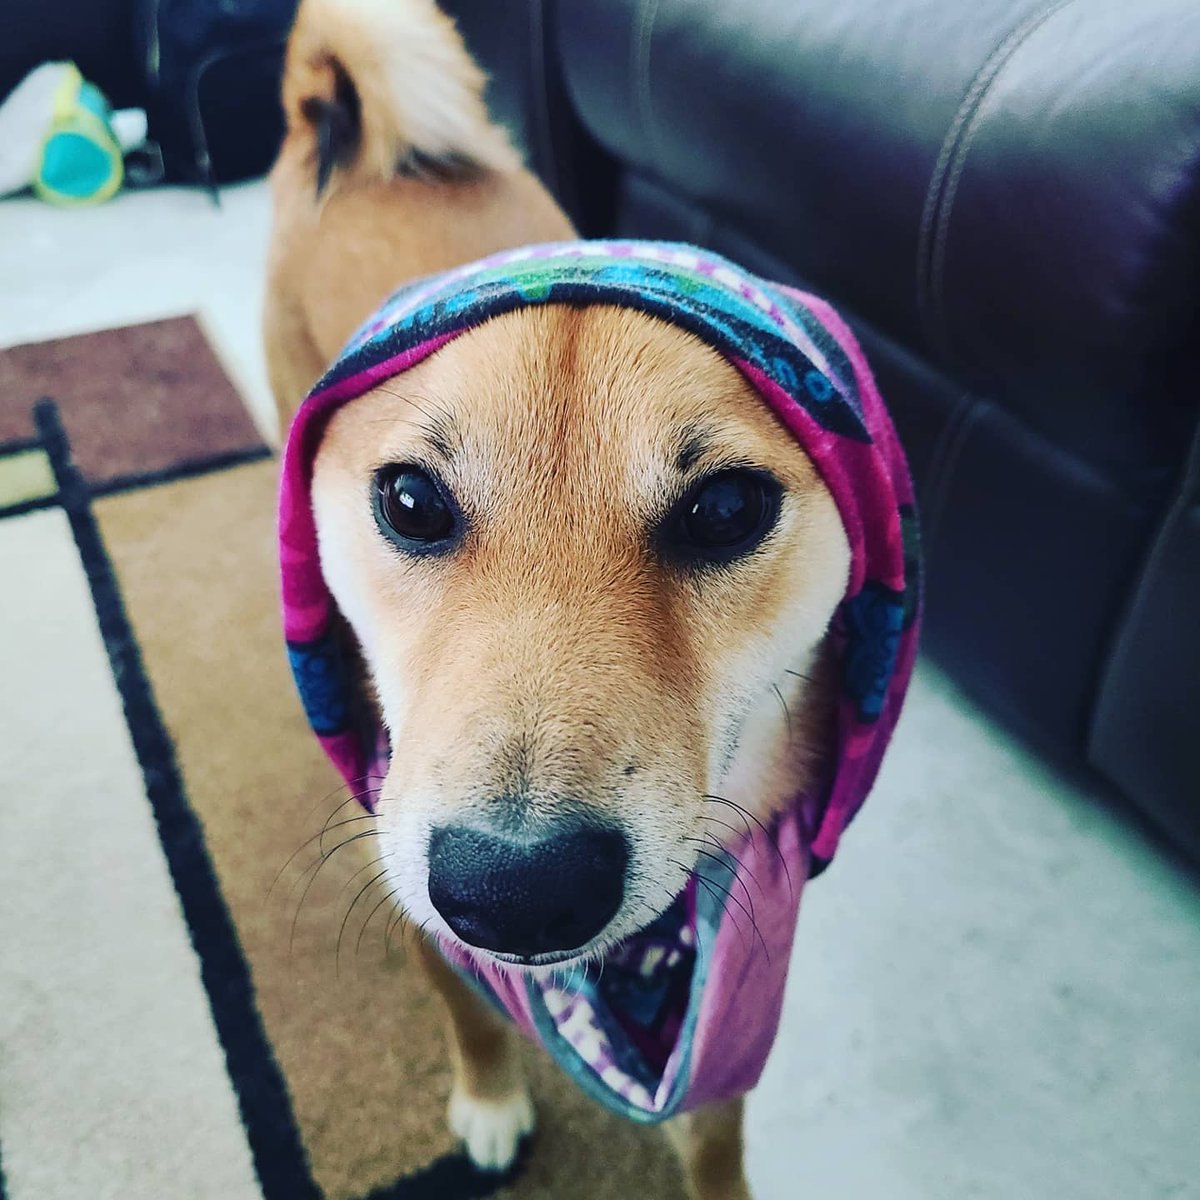 You guys. Mom found her old #survivor buff. What do you think of my war face? #buttholedog #shiba pic.twitter.com/9pLhQpTGeF